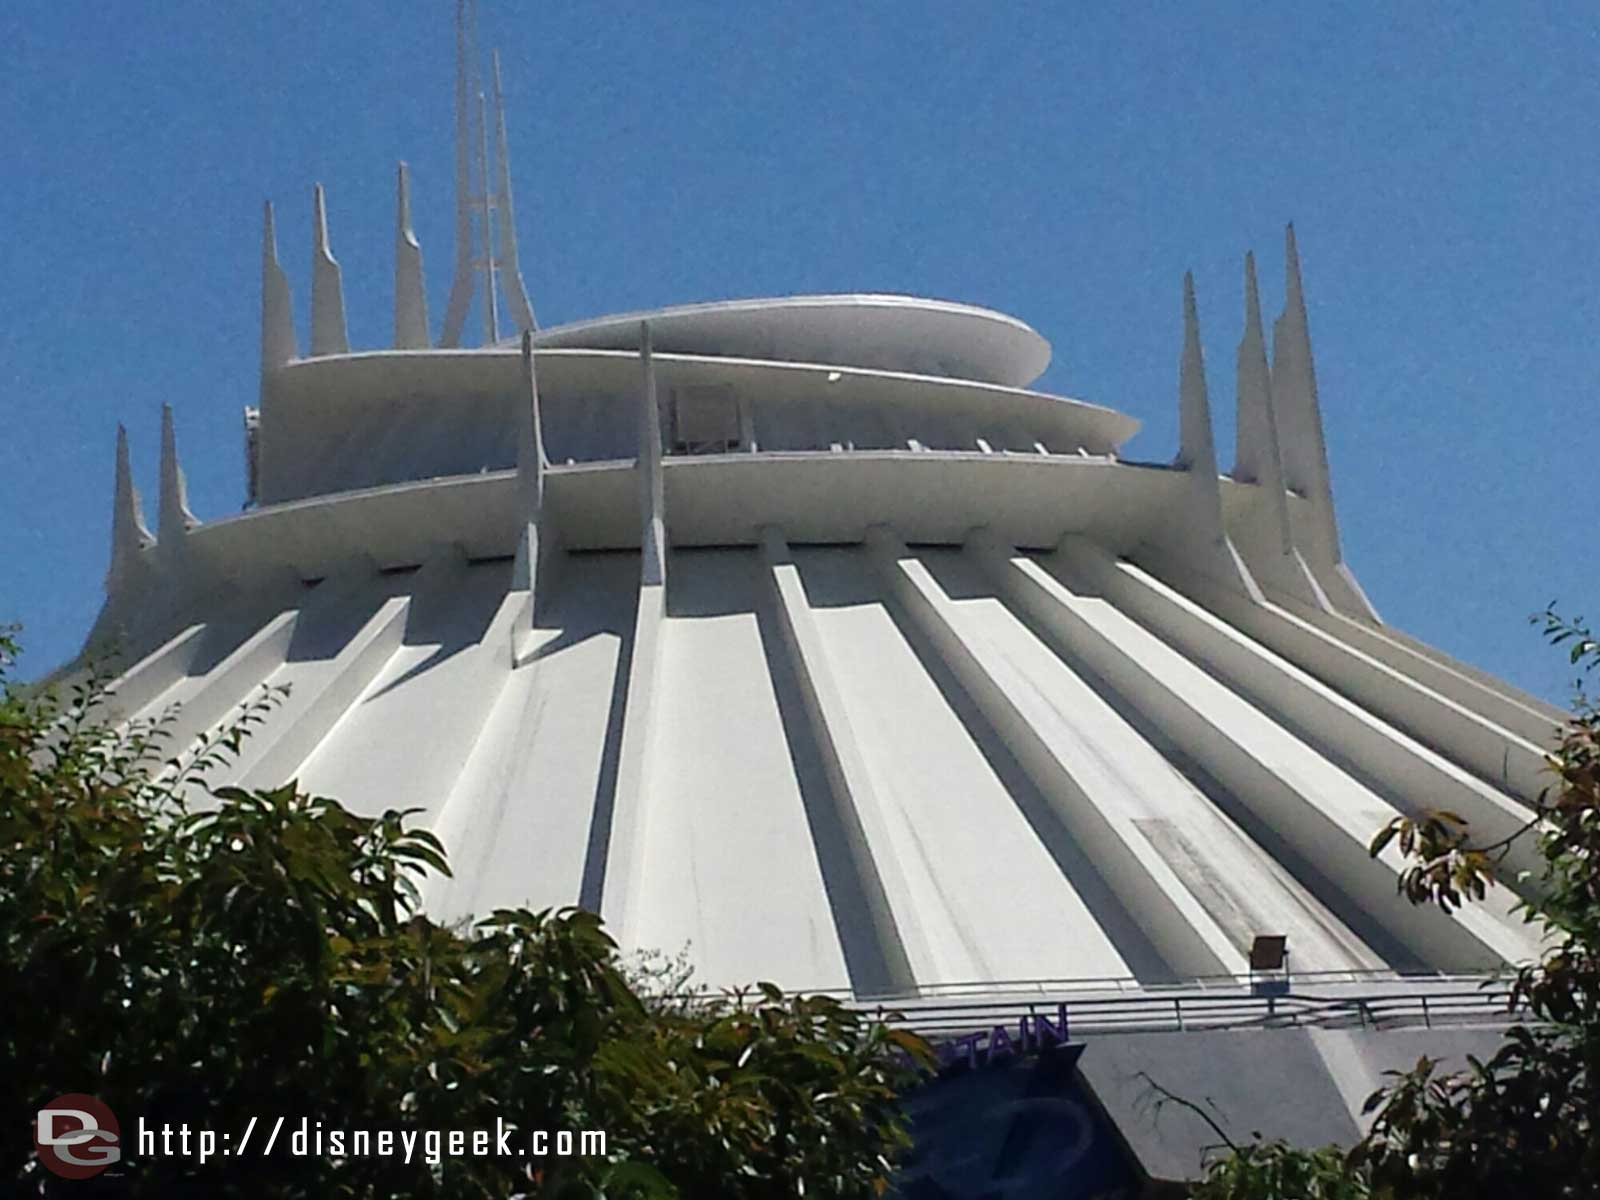 Some of Space Mountain has been cleaned, look on the lower right for comparison